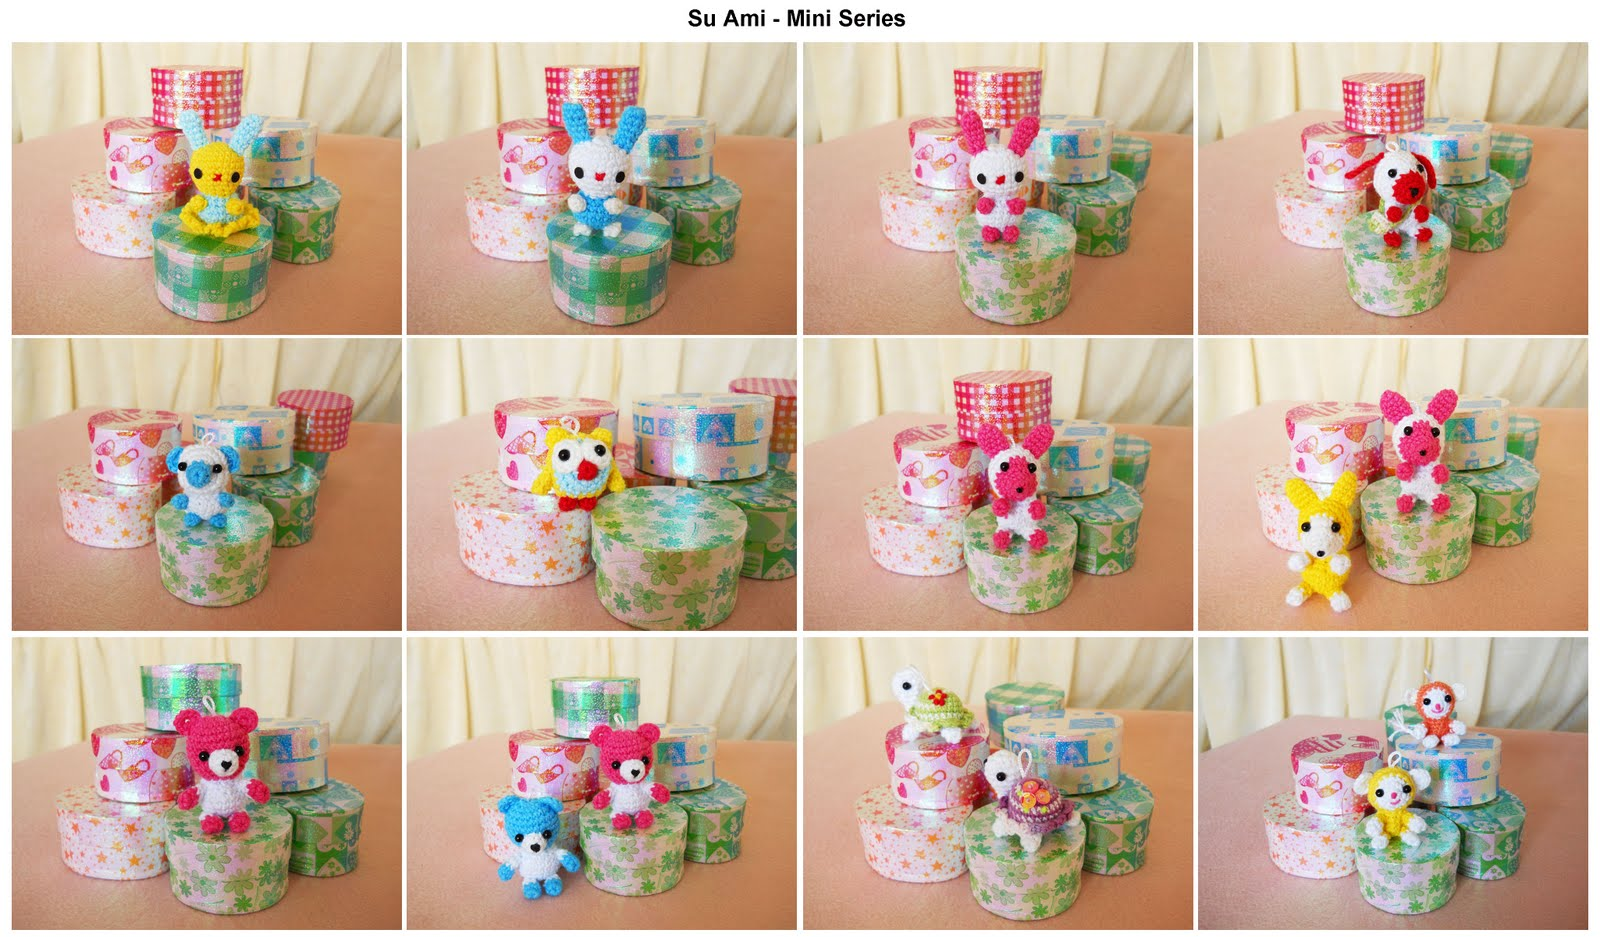 Su Ami cute animal gifts collectible toys doll crochet miniatures